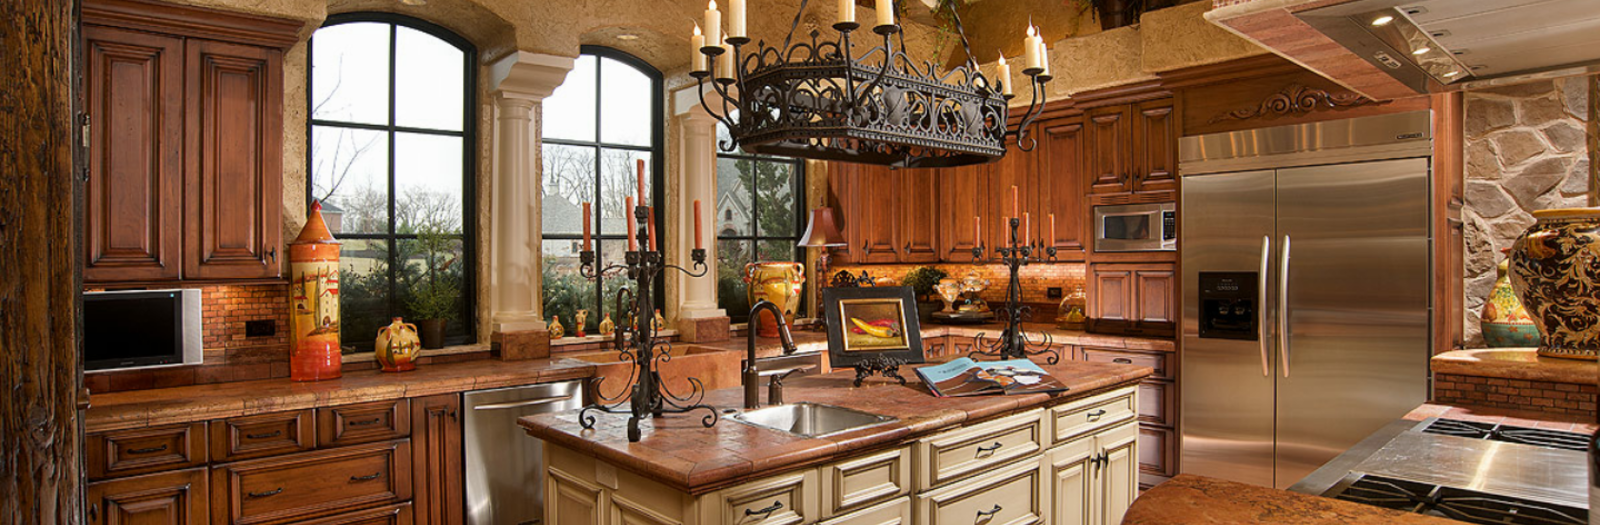 Mediterranean Kitchen with beauitful kitchen island with sink